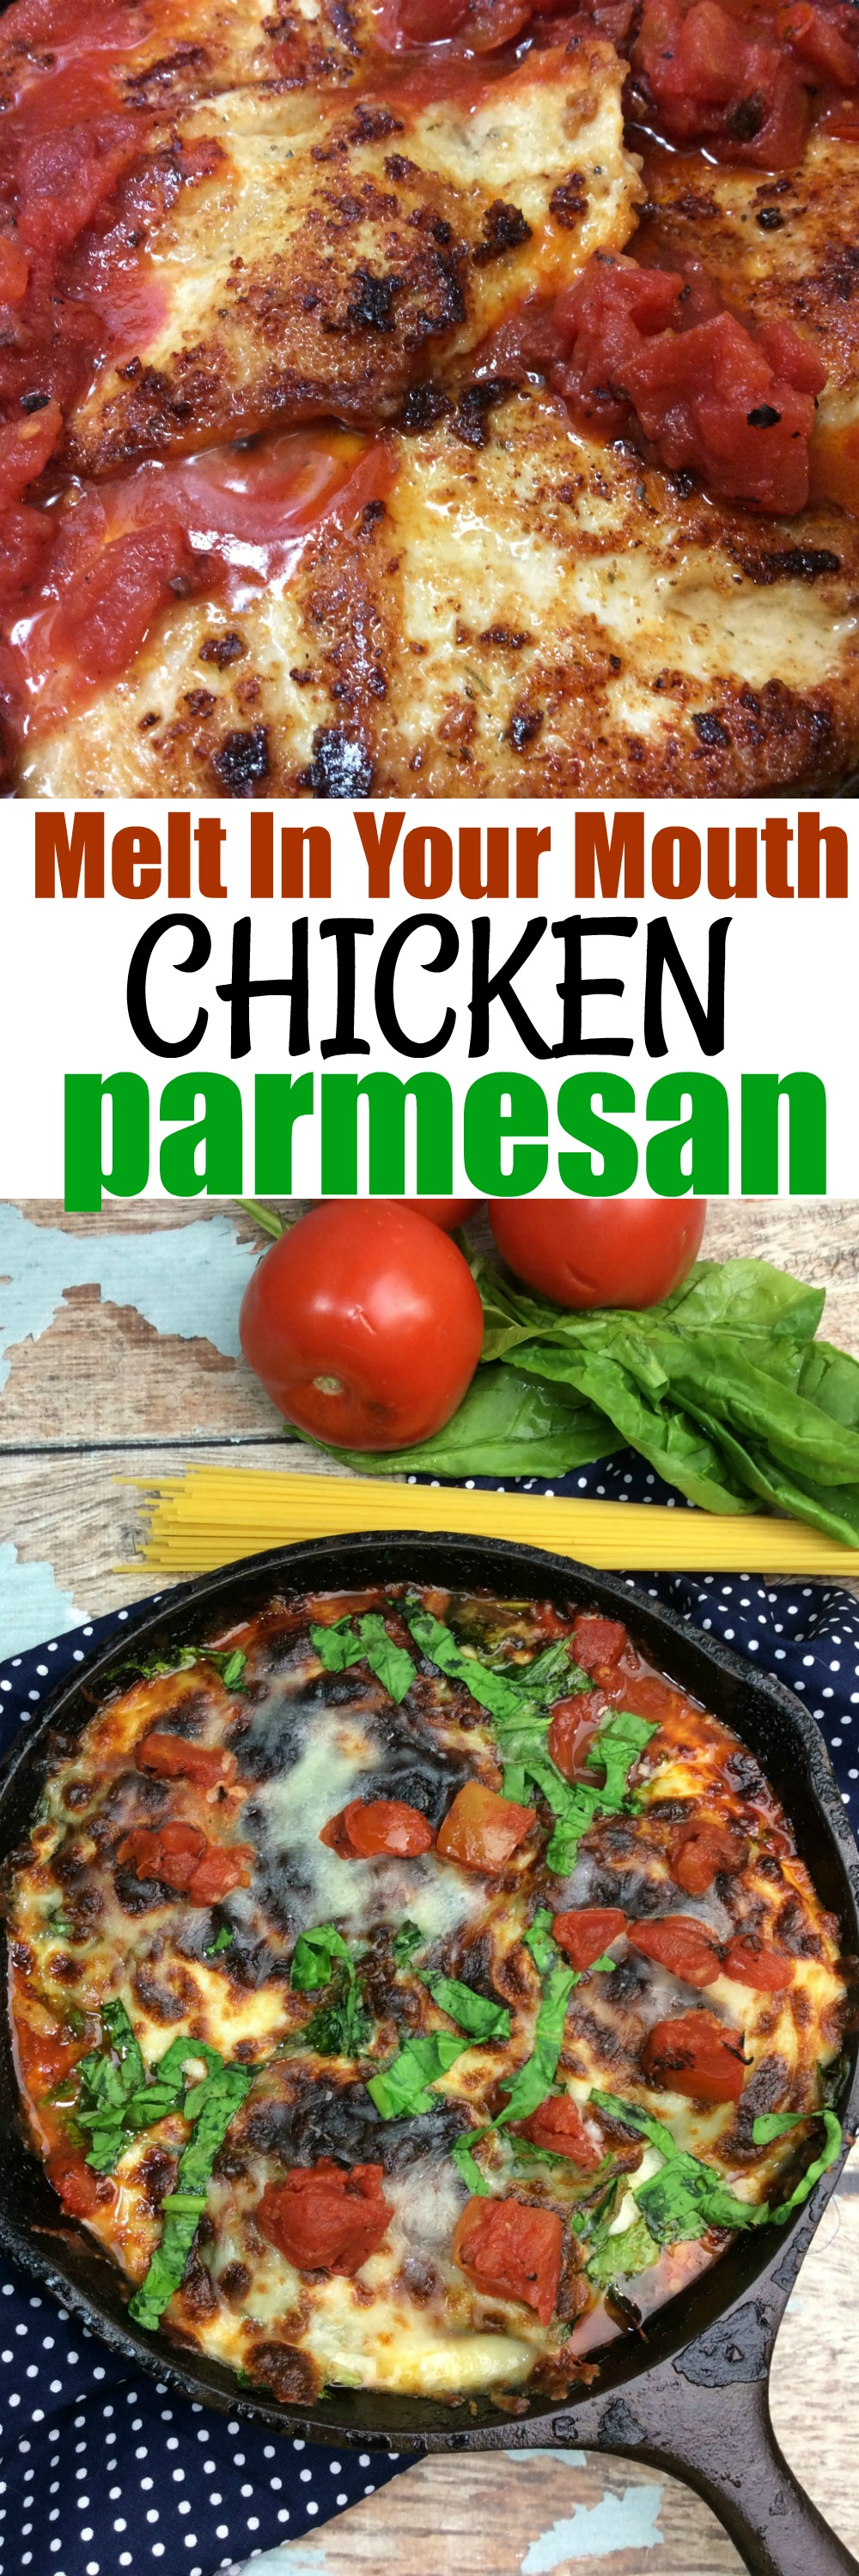 How to Make Chicken Parmesan